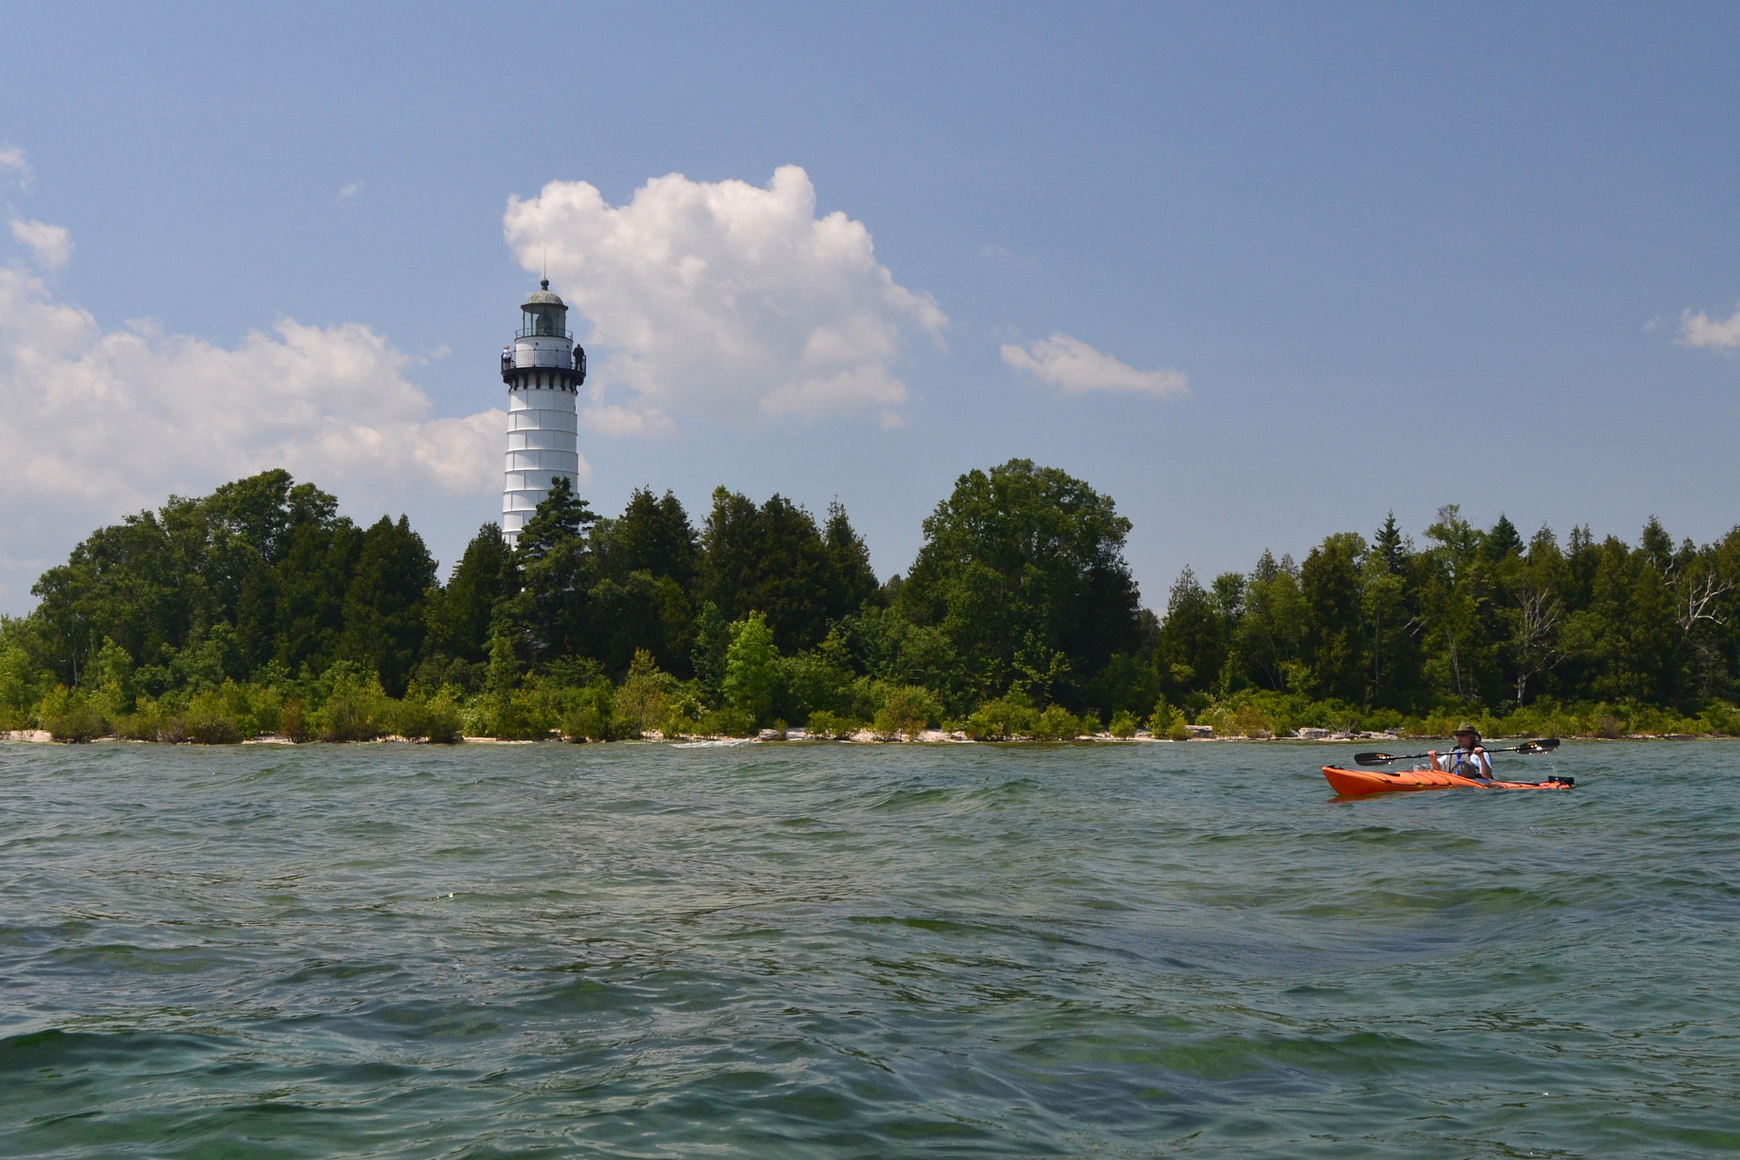 Photo of tall white lighthouse on island in Lake Michigan with kayakers paddling in water nearby